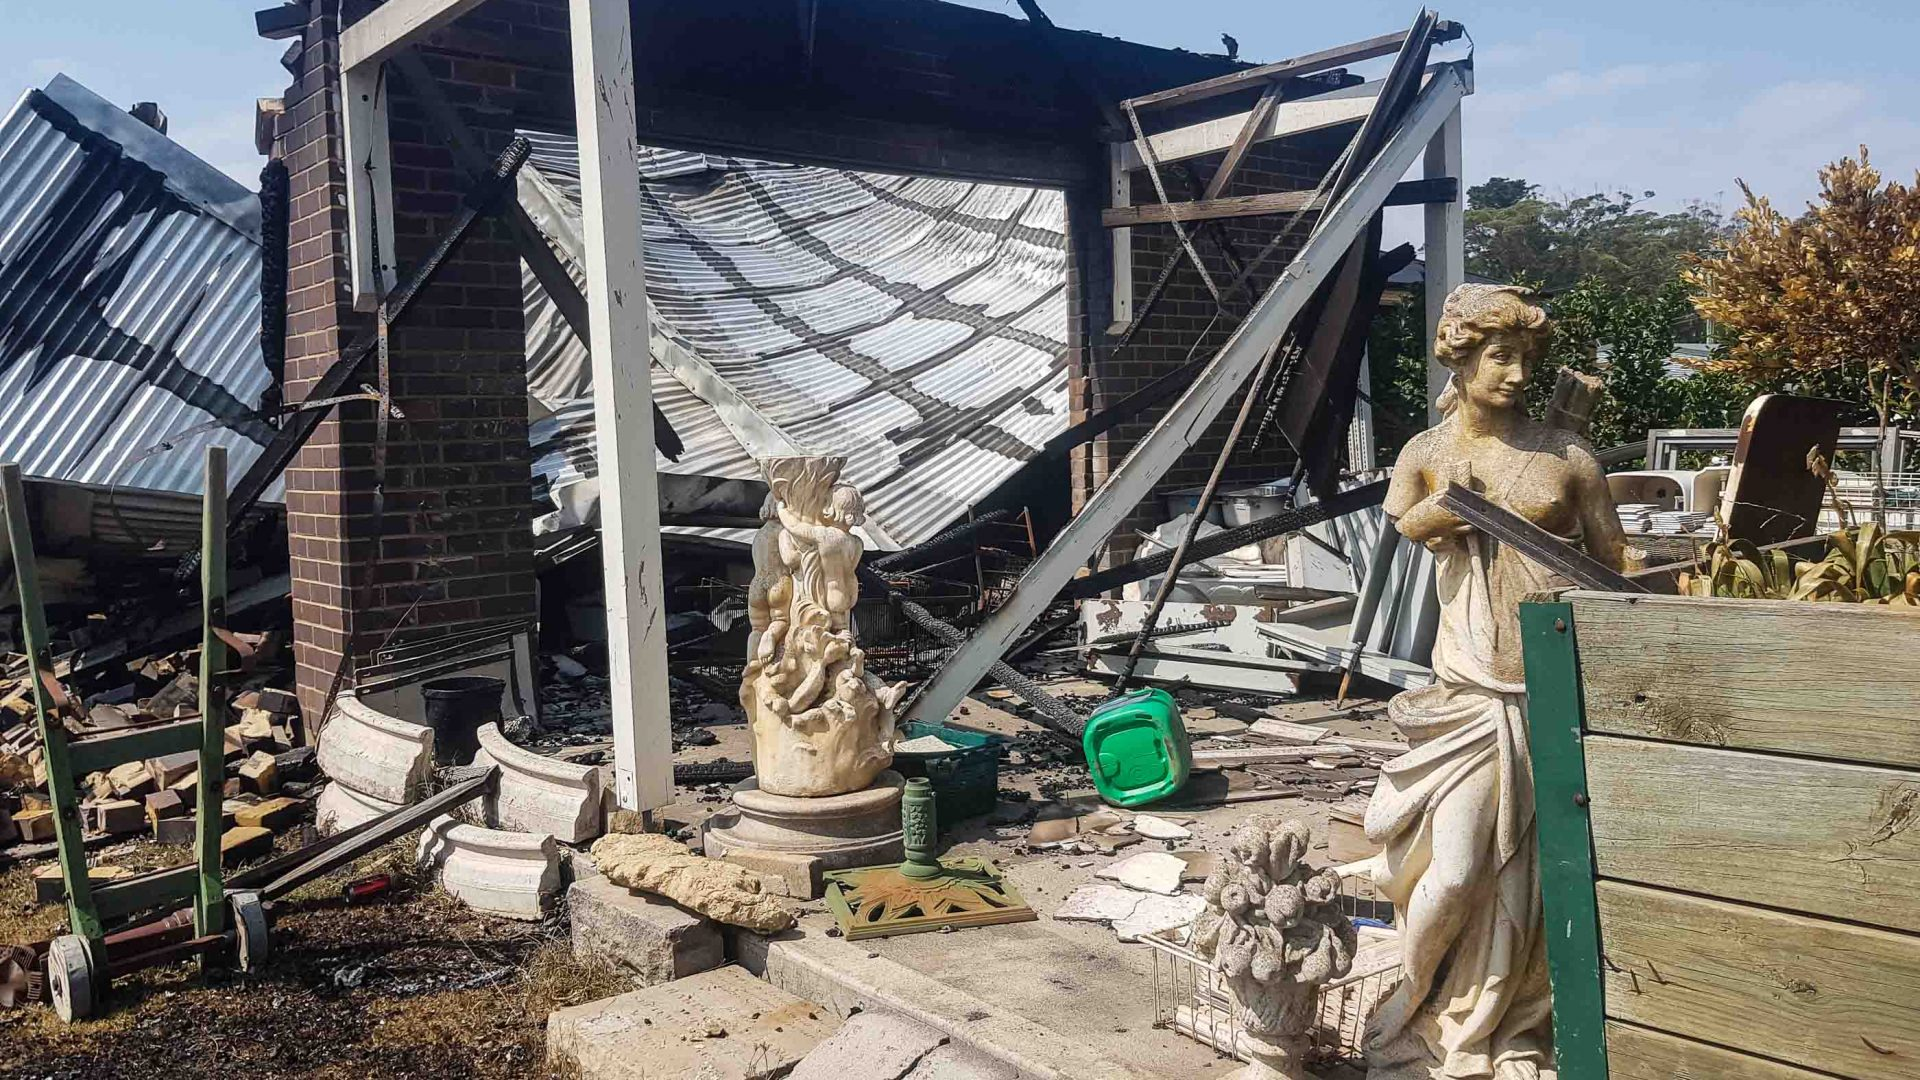 The statues are all that's left of this destroyed house.